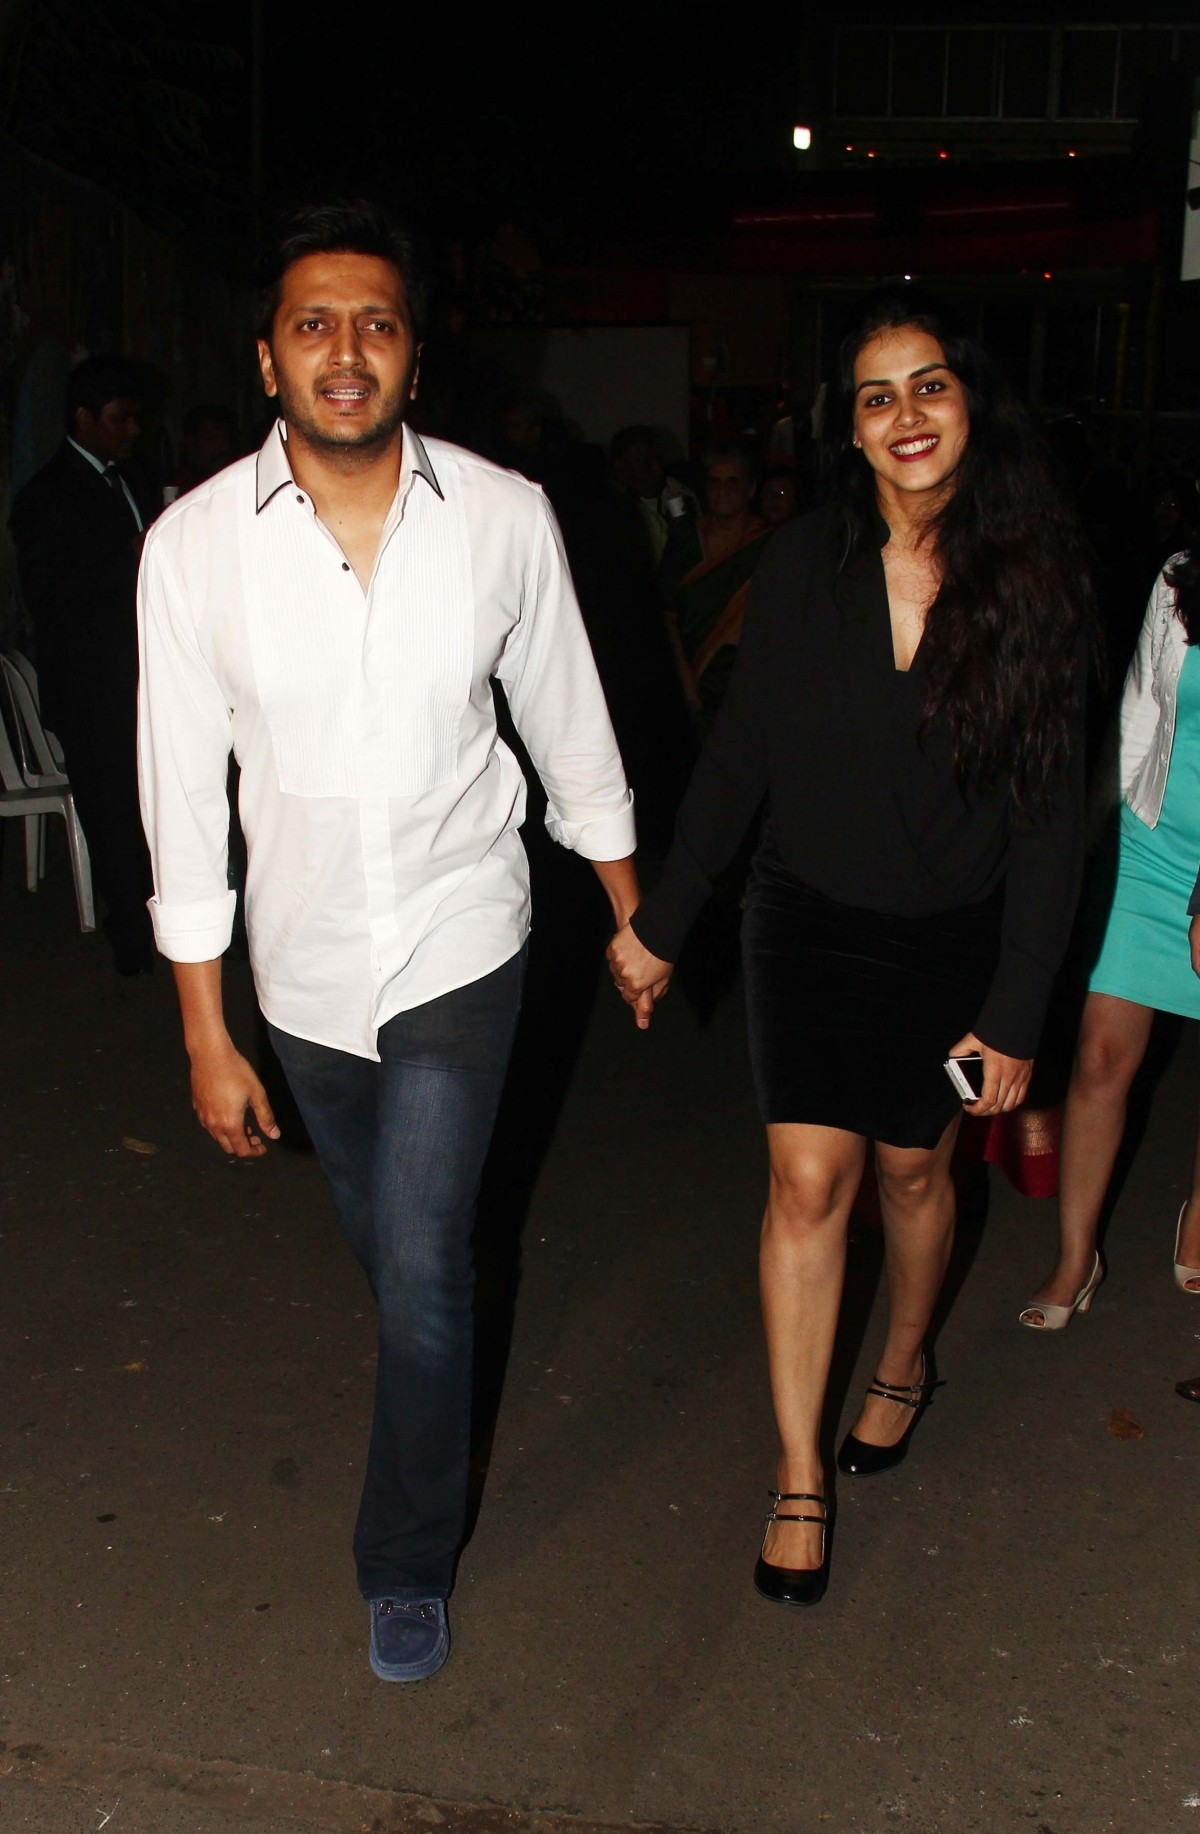 Kareena Kapoor Khan, Genelia D'Souza, Riteish Deshmukh Attends Christmas Midnight Mass